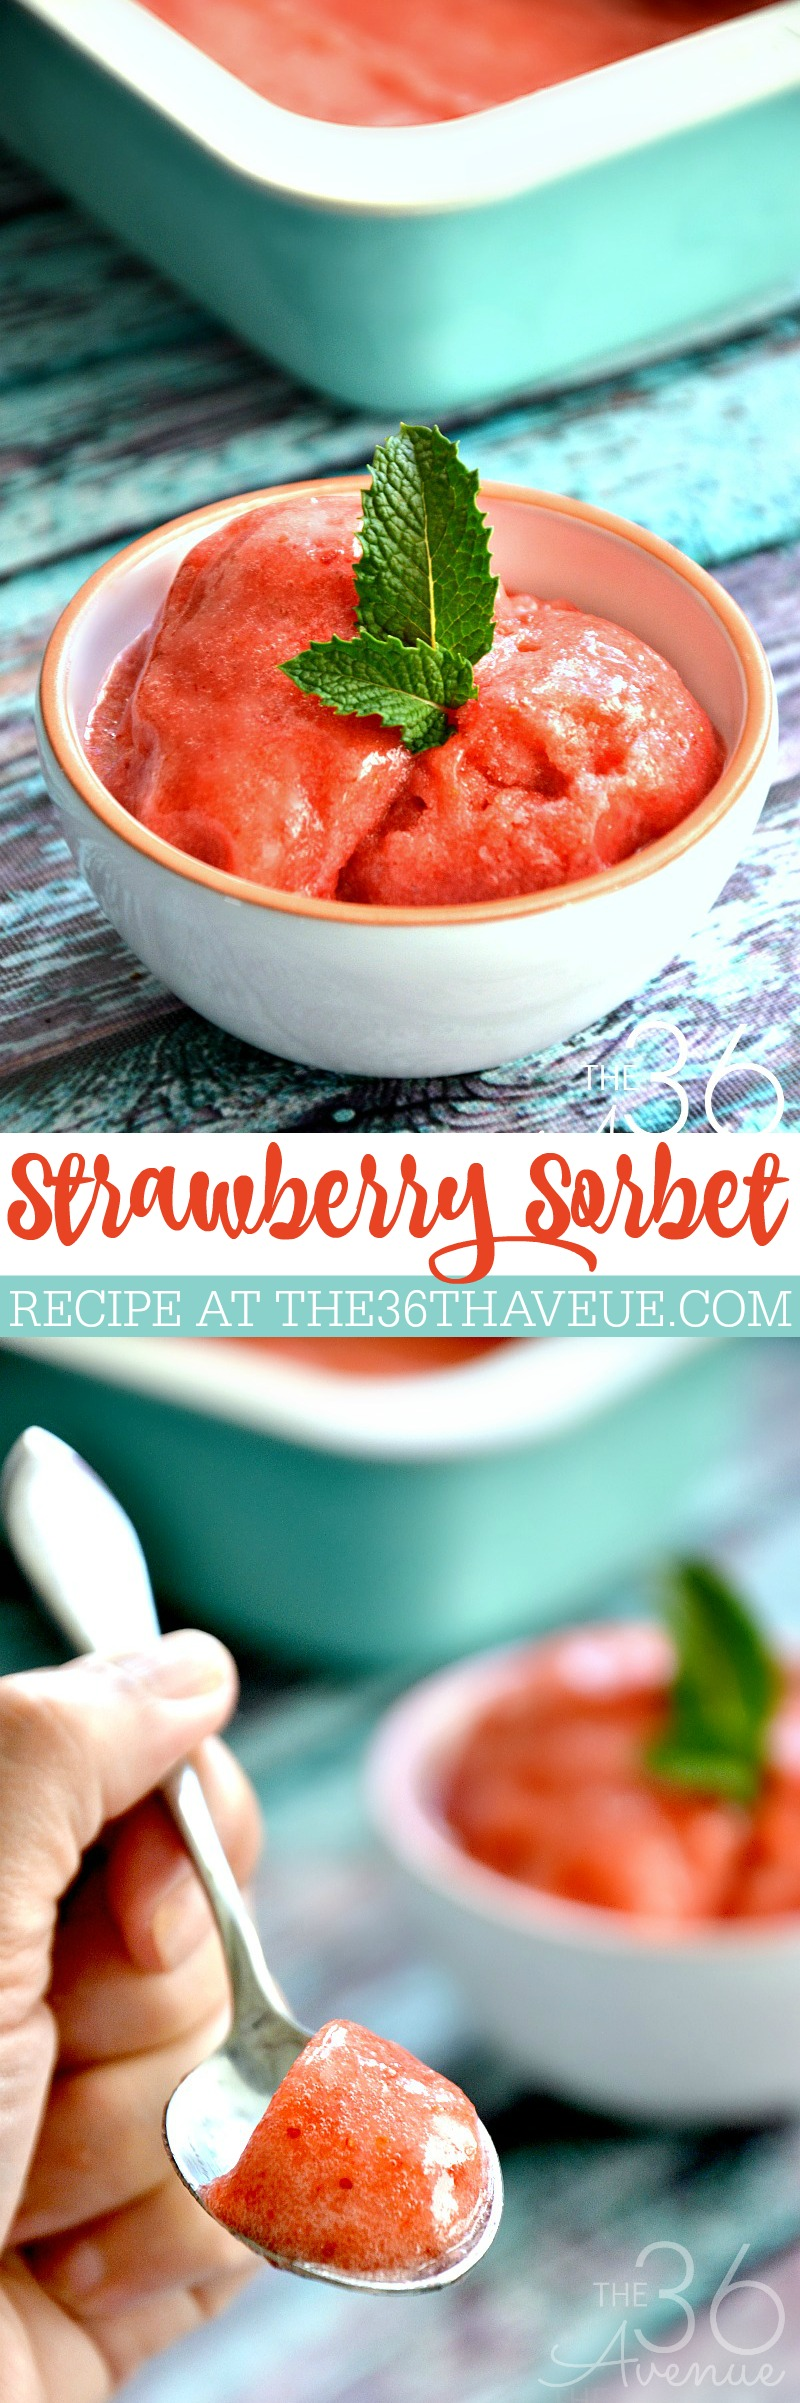 Delicious and easy Strawberry Sorbet Recipe. Just two ingredients and tons of flavor. This is the perfect dessert or cold summer snack.